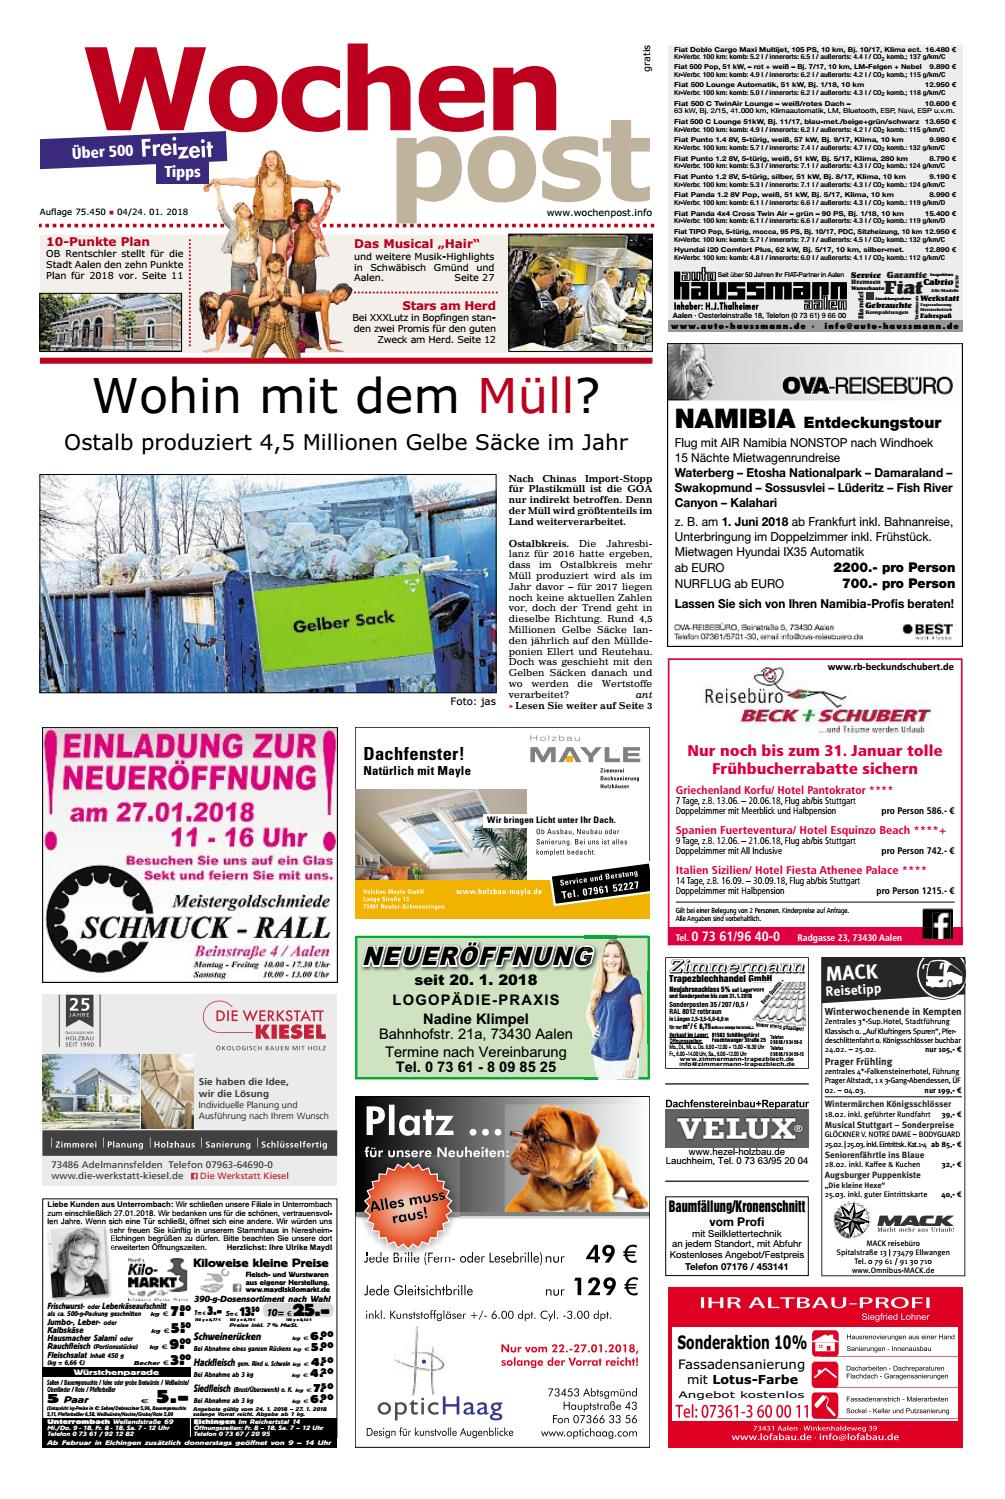 Wo man Frauen in Aalen Legen